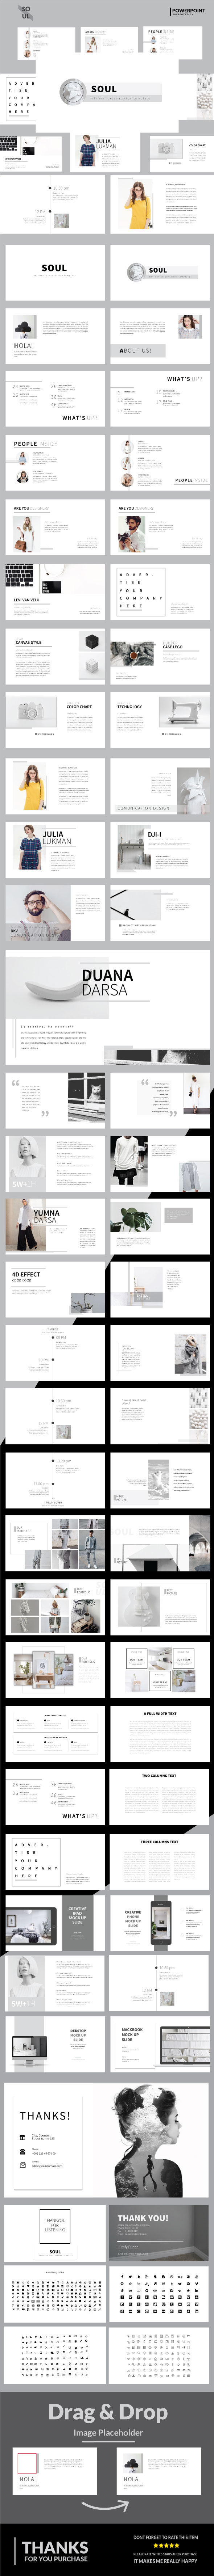 Soul - Multipurpose Powerpoint Template - Business PowerPoint Templates